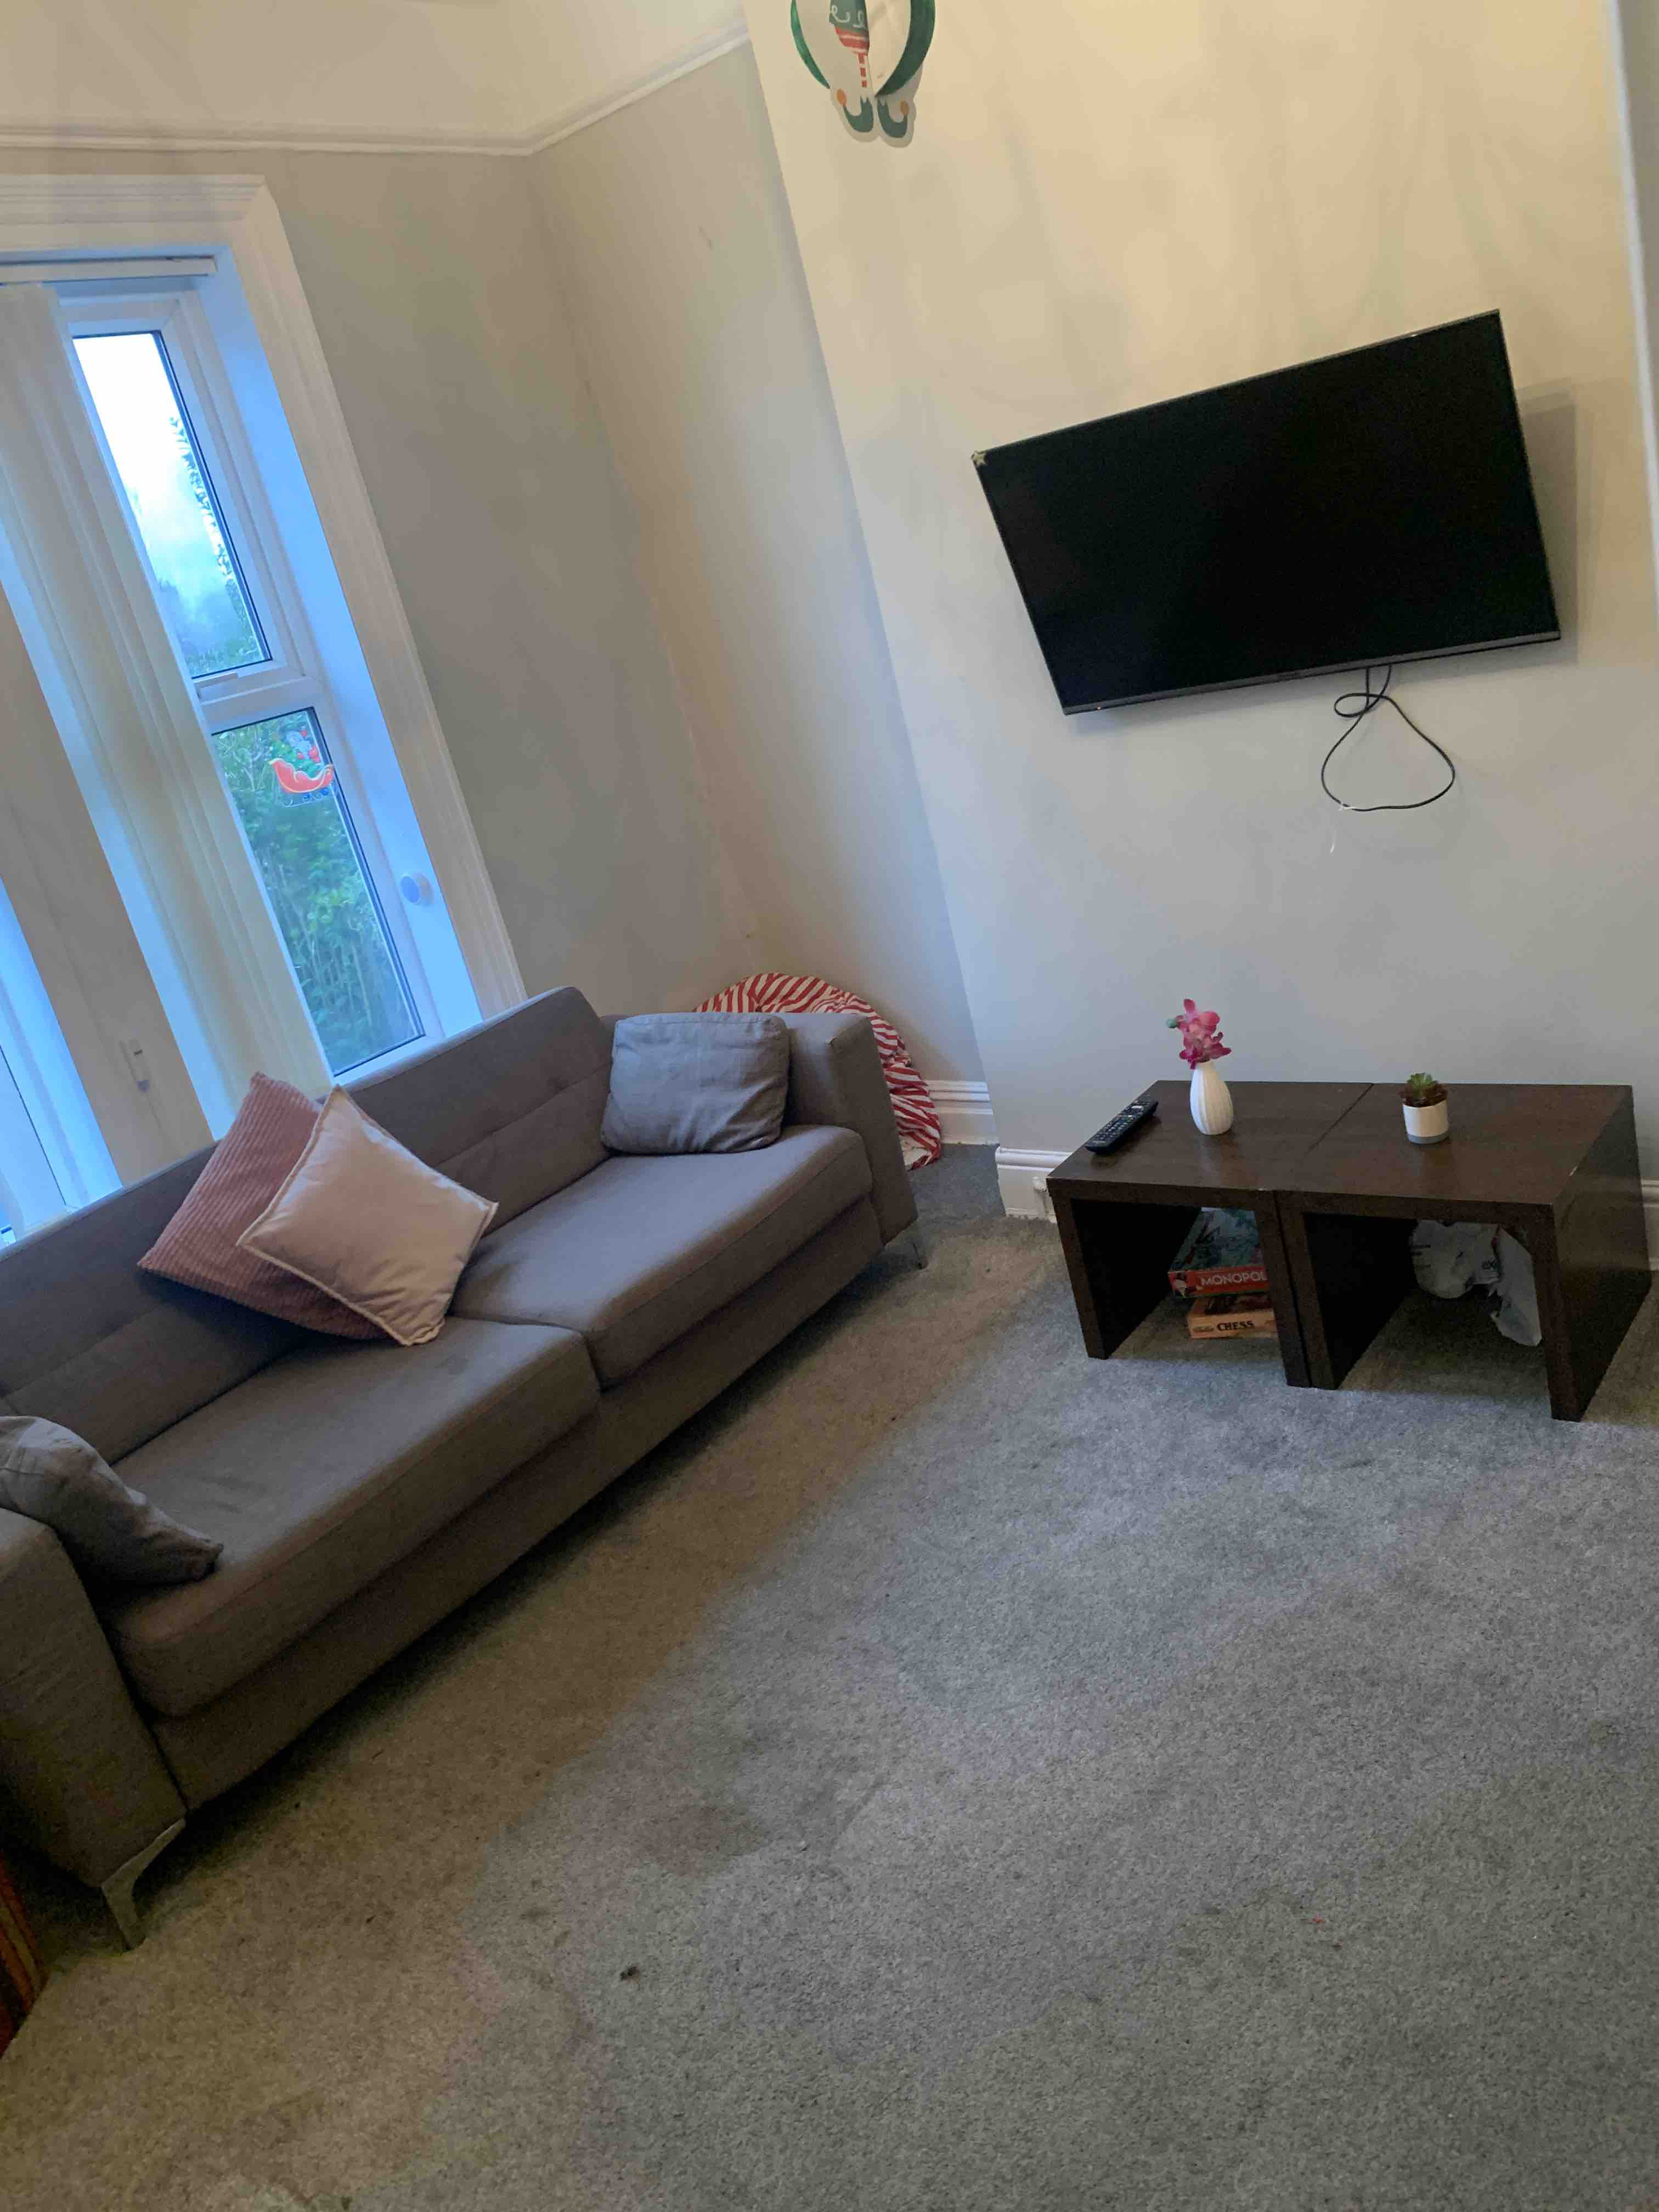 1 room in Headingley, Leeds, LS42PD RoomsLocal image